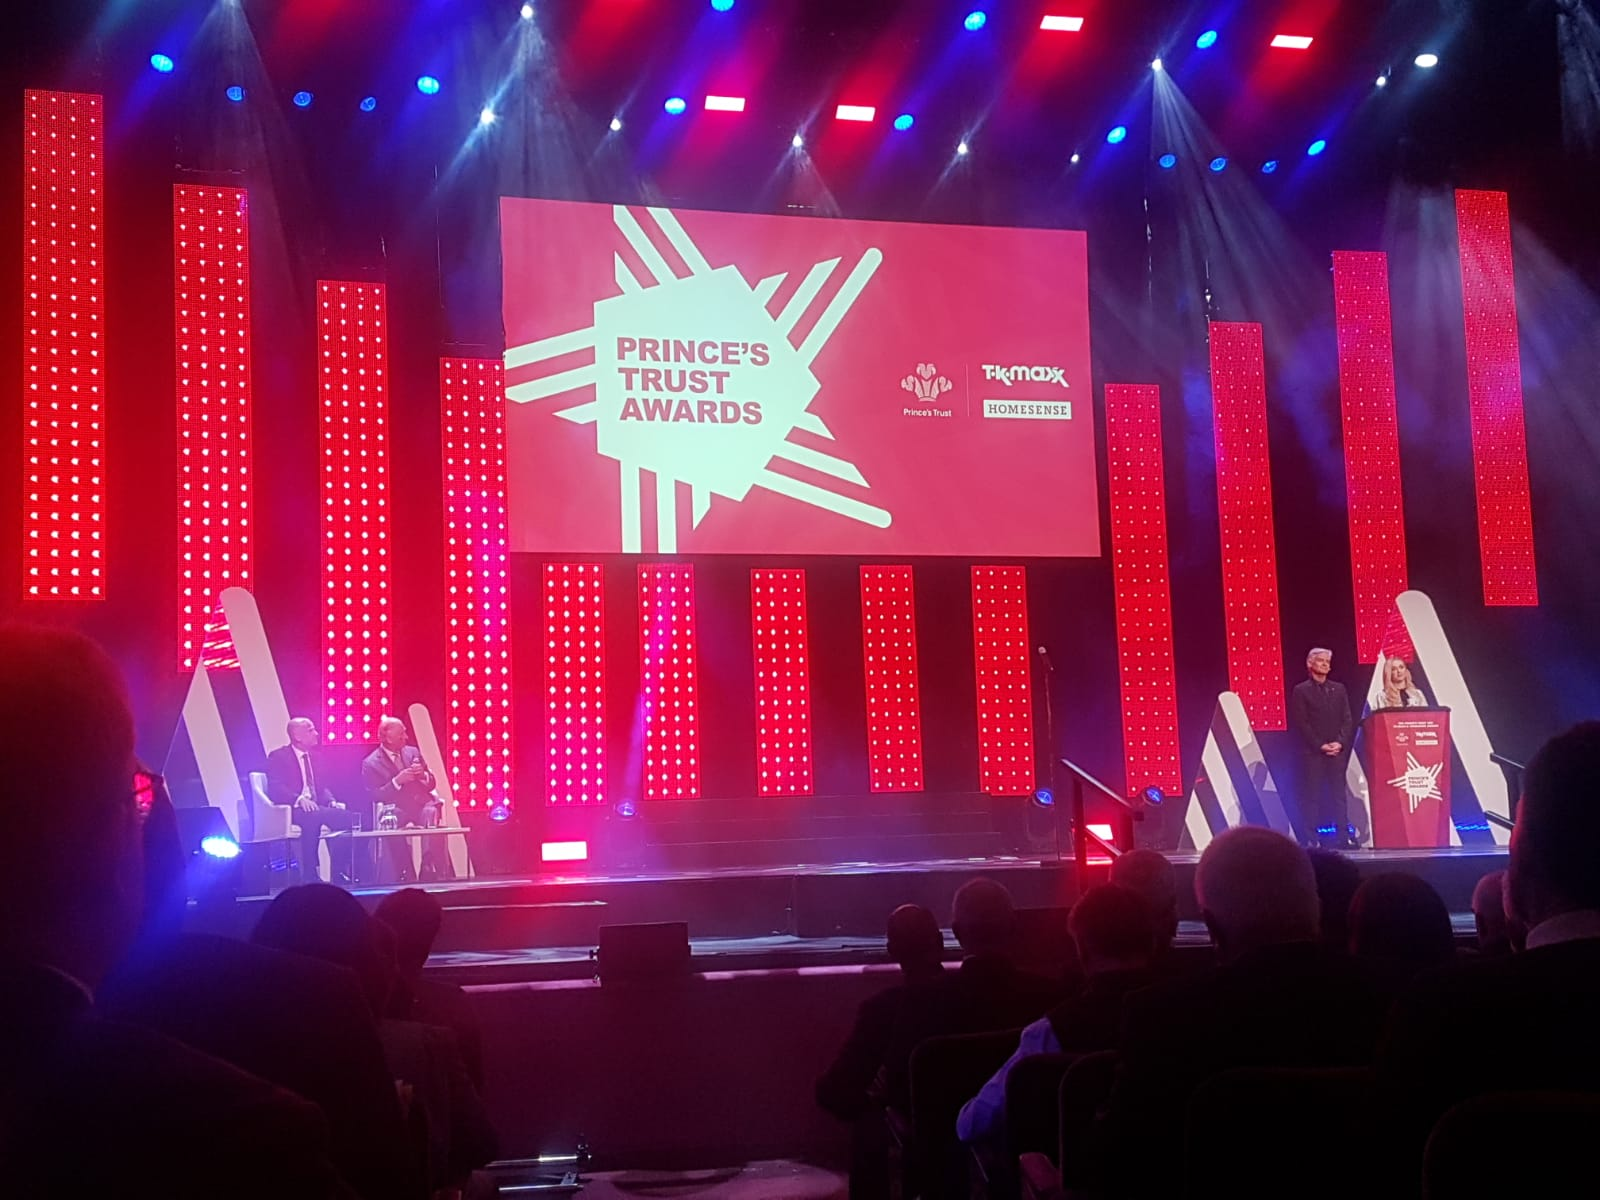 Marking our fifth year as AV supplier to National Prince's Trust and TK Maxx & Homesense Awards